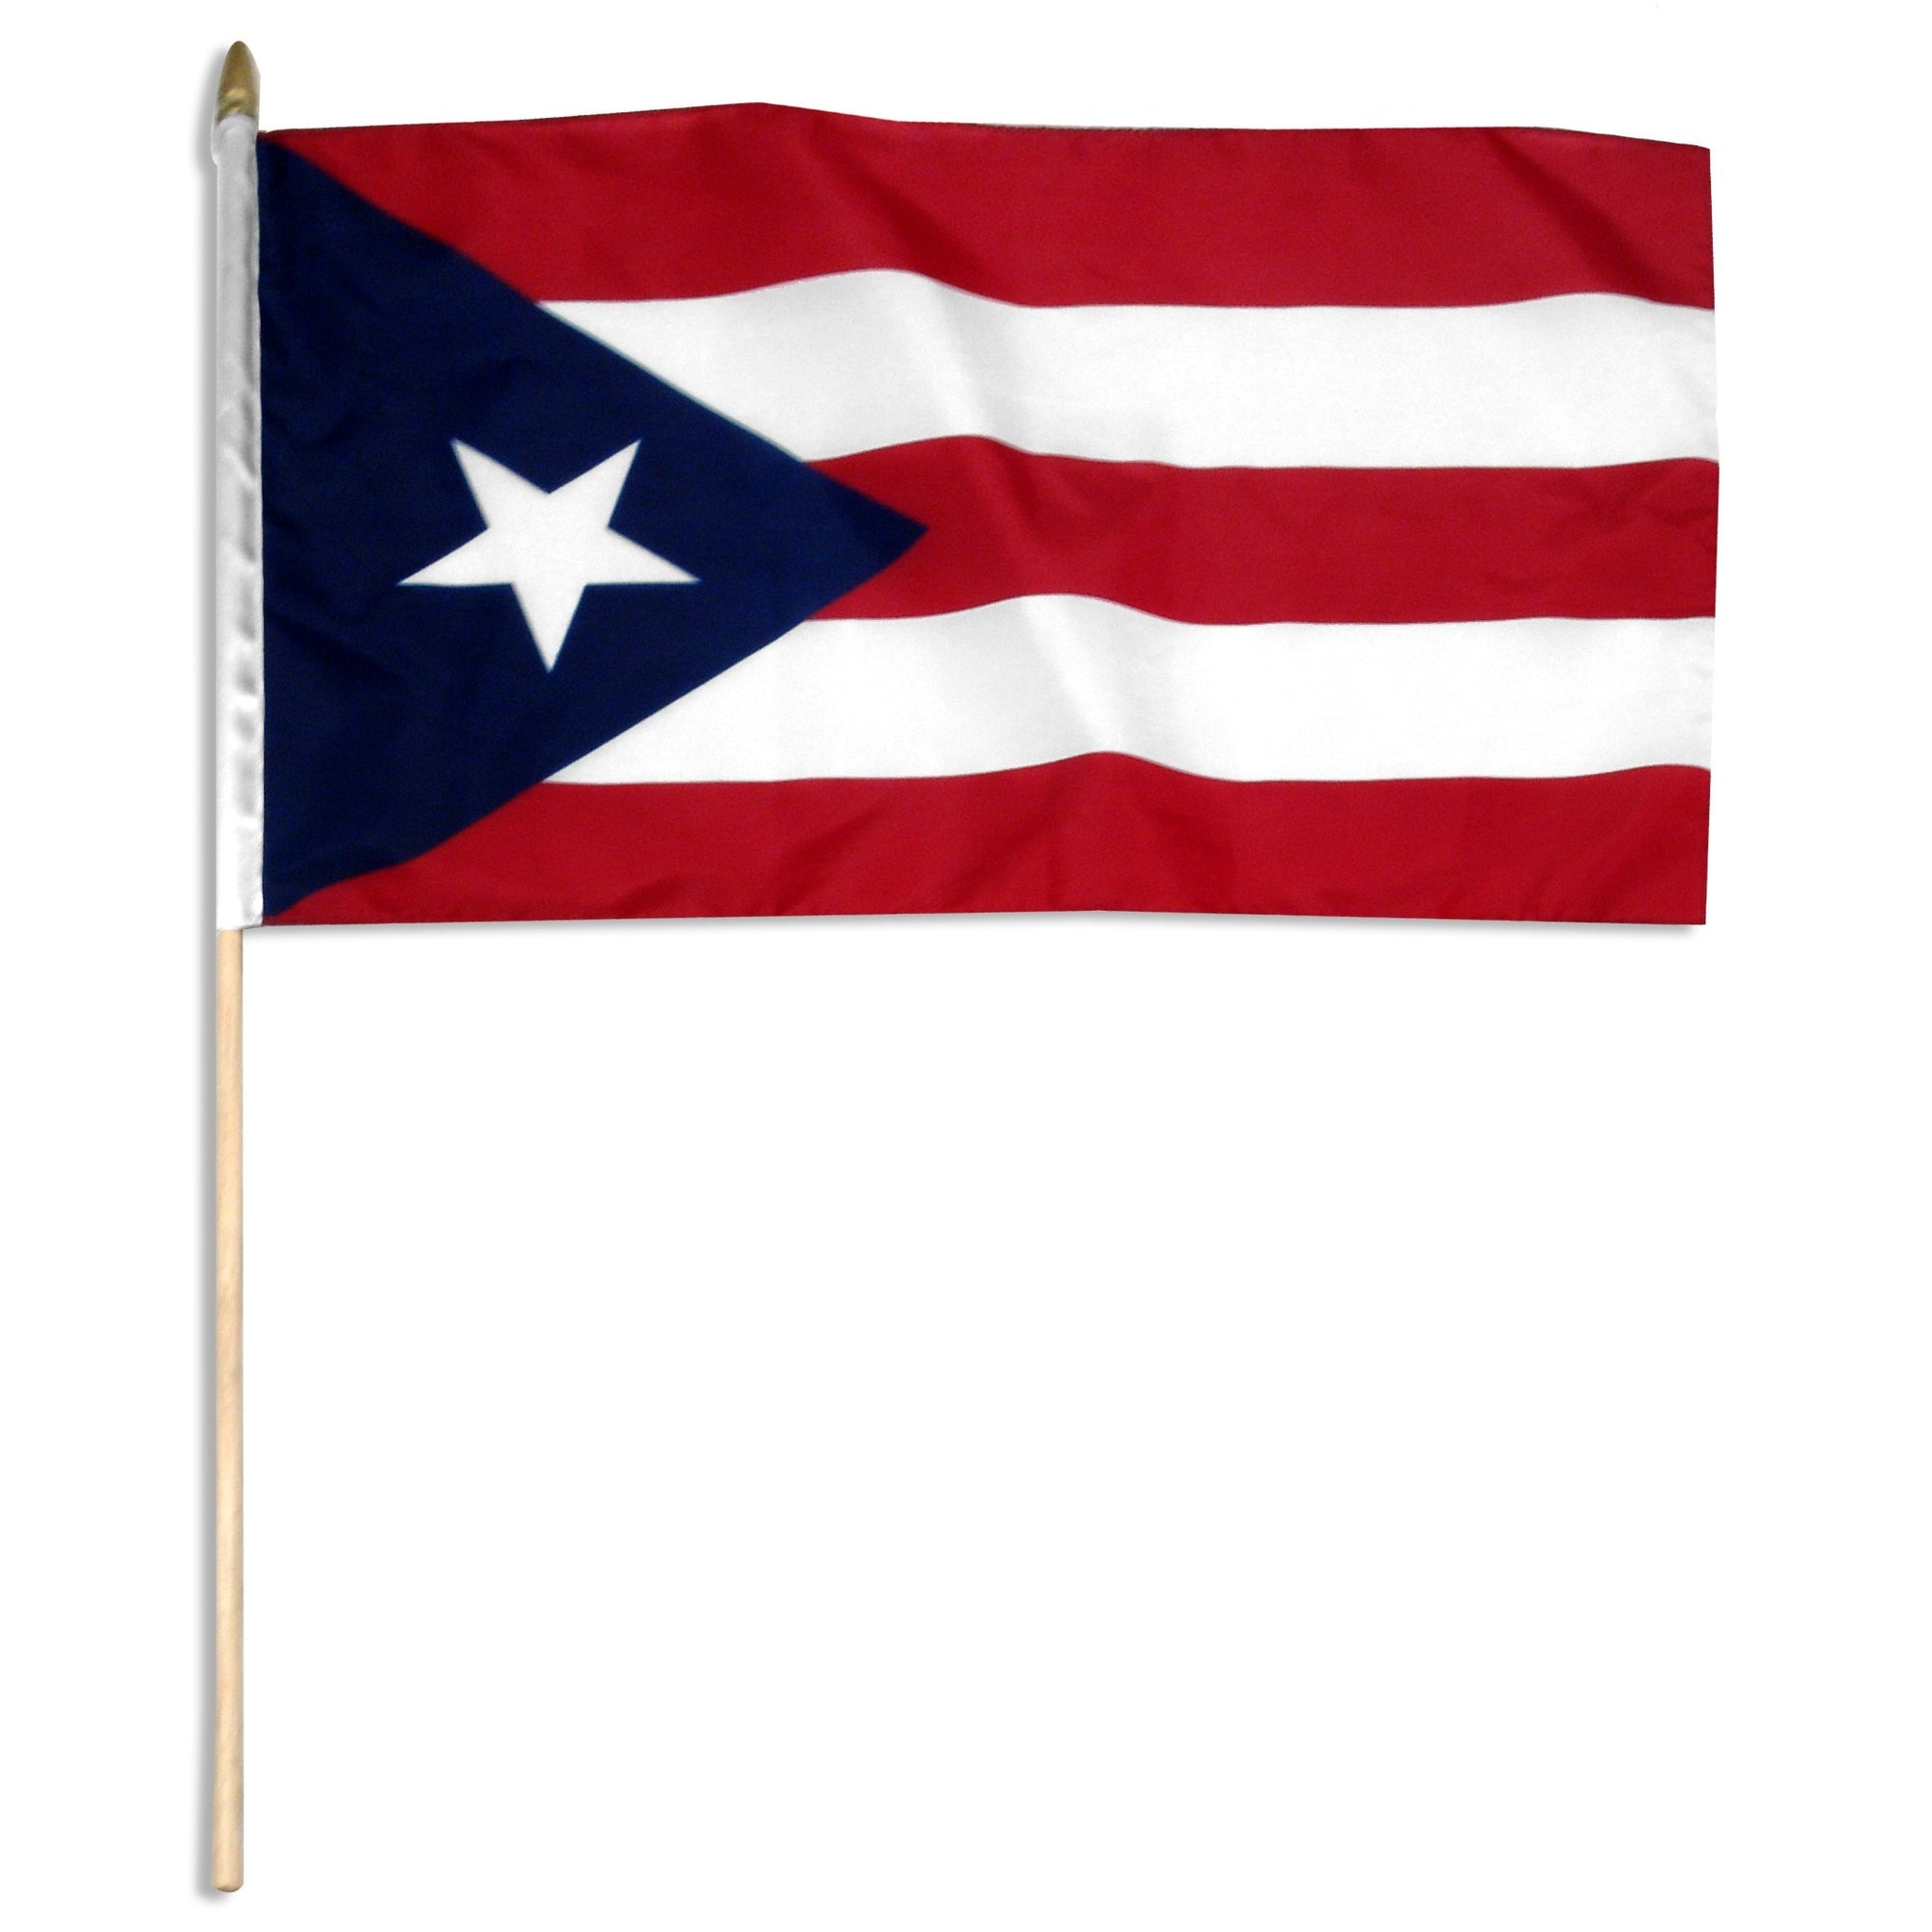 Puerto Rico flag for sale